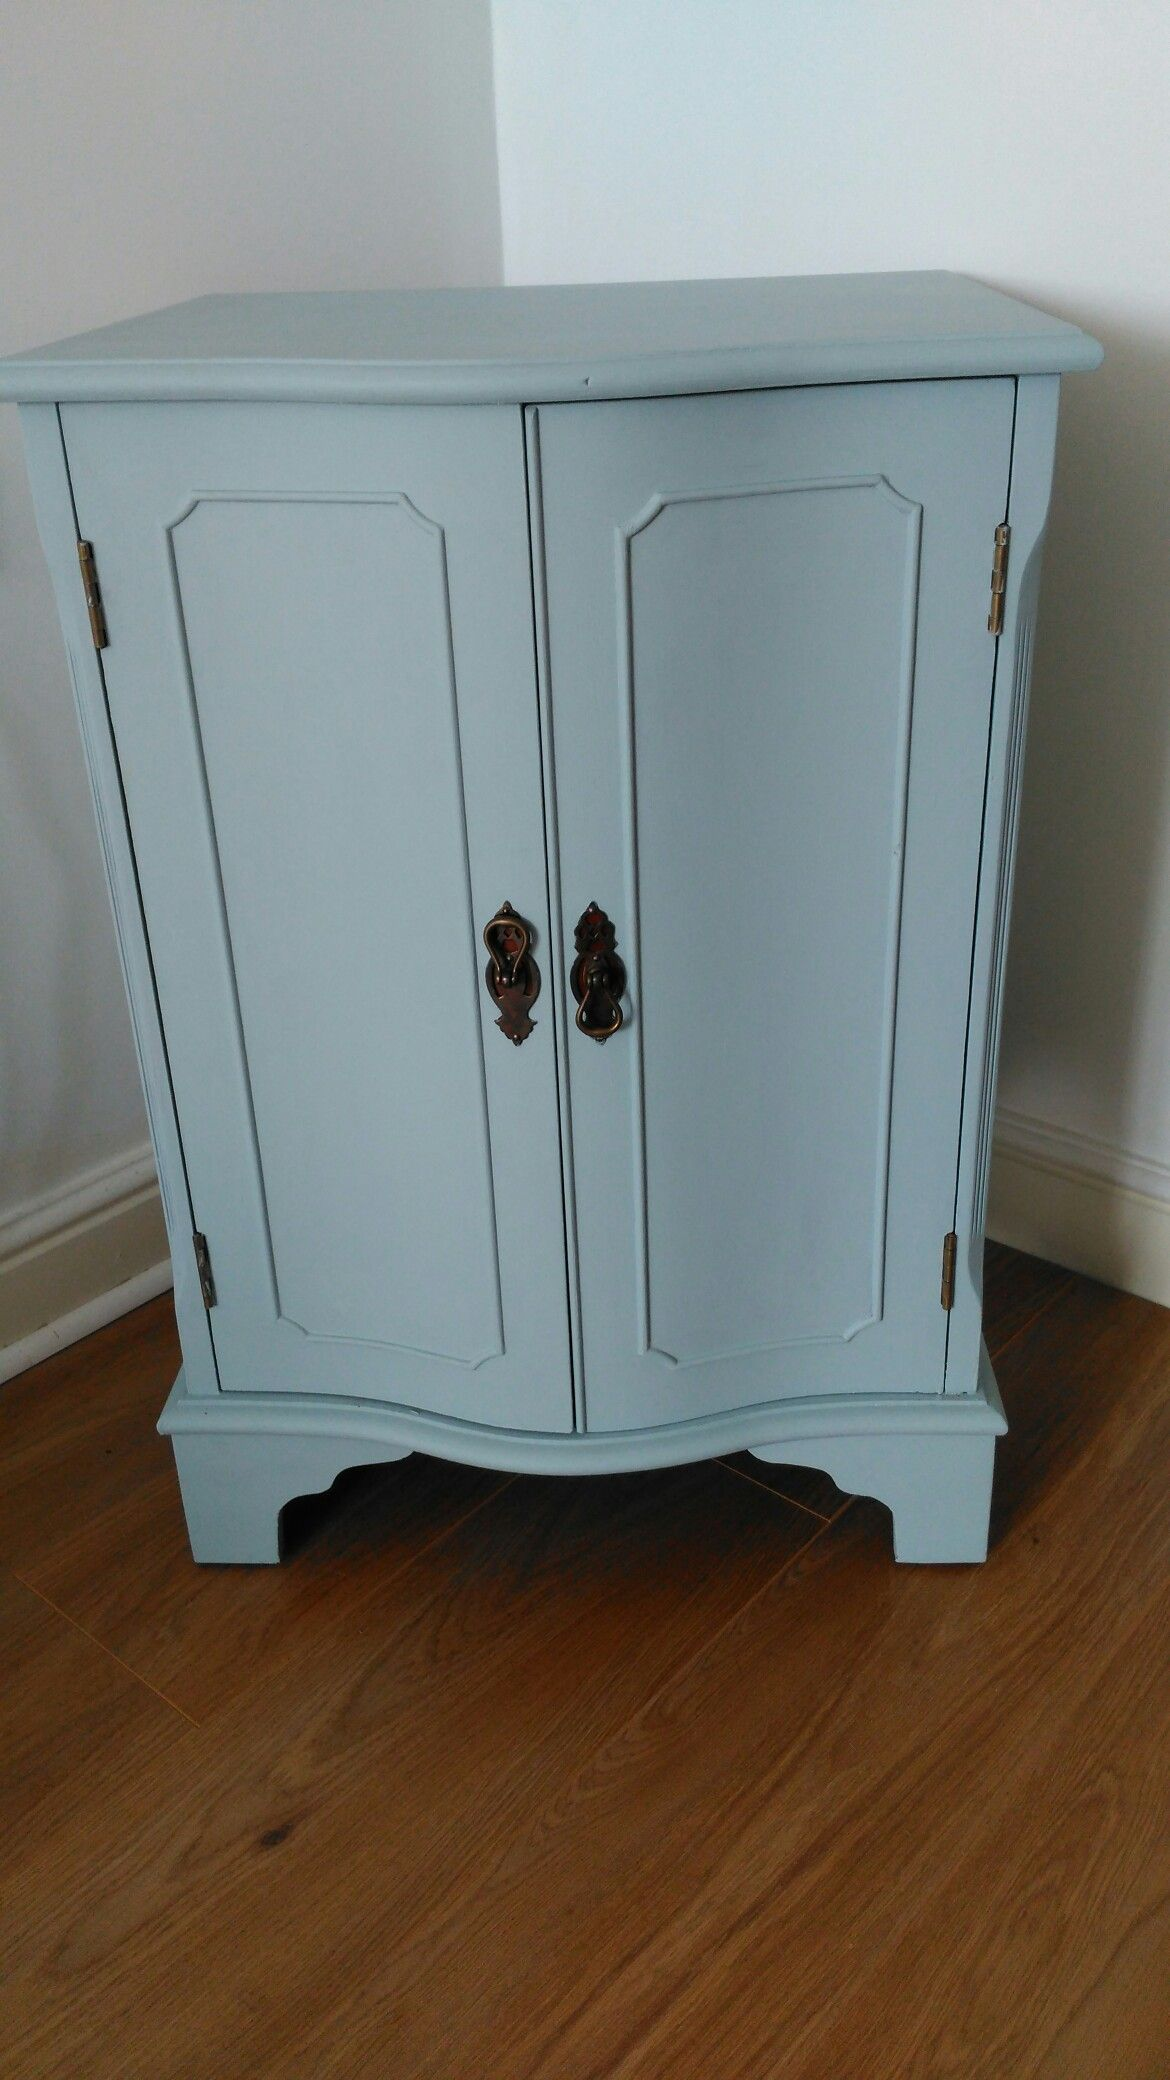 Ronseal chalky furniture paint ronseal - Ronseal Chalky Furniture Paint Duck Egg Blue